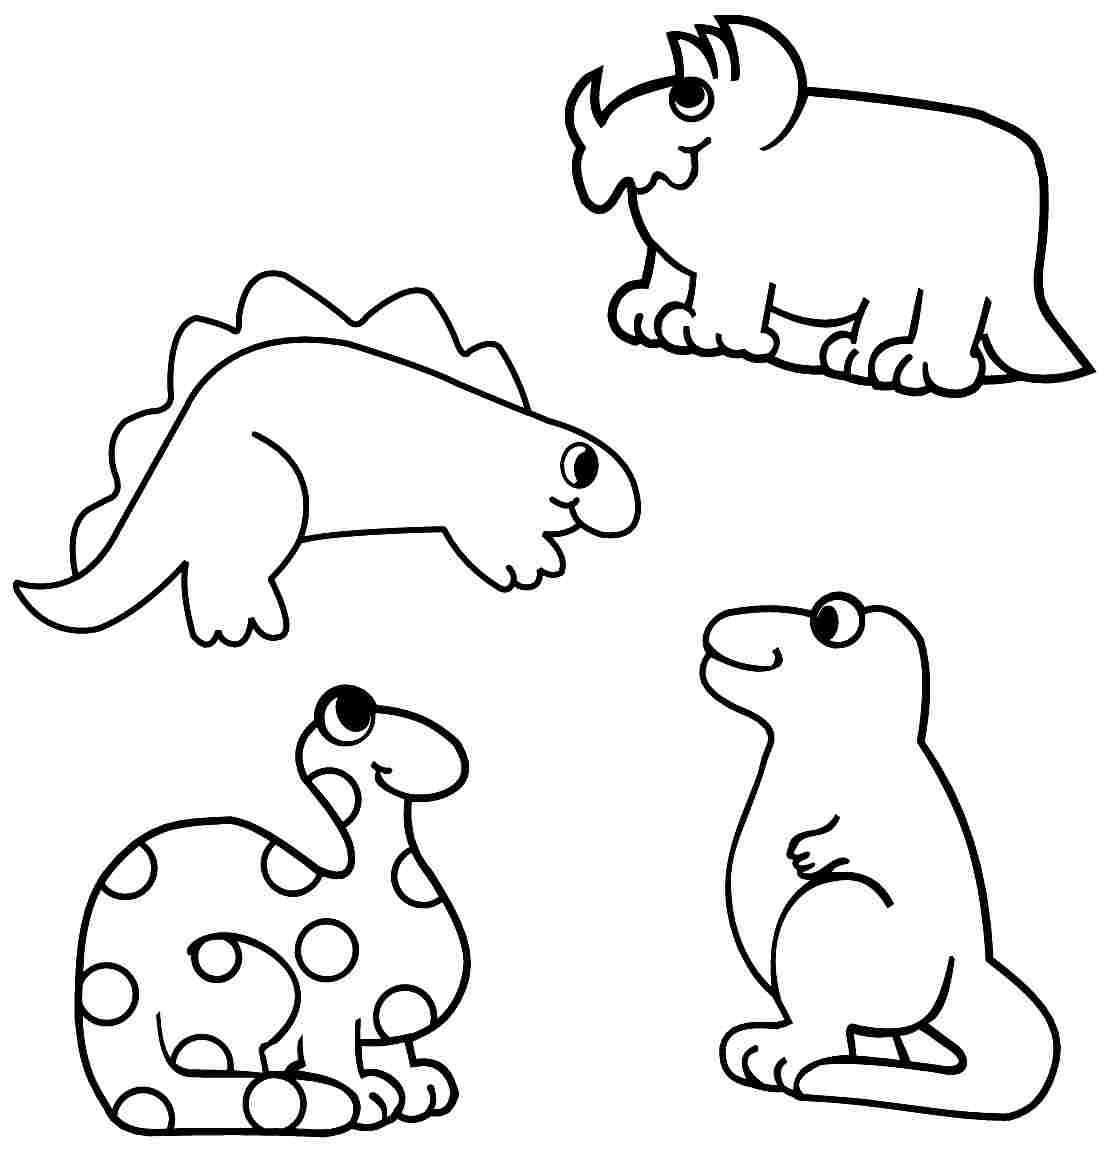 coloring pages dinosaurs free coloring pages printable pictures to color kids dinosaurs pages coloring